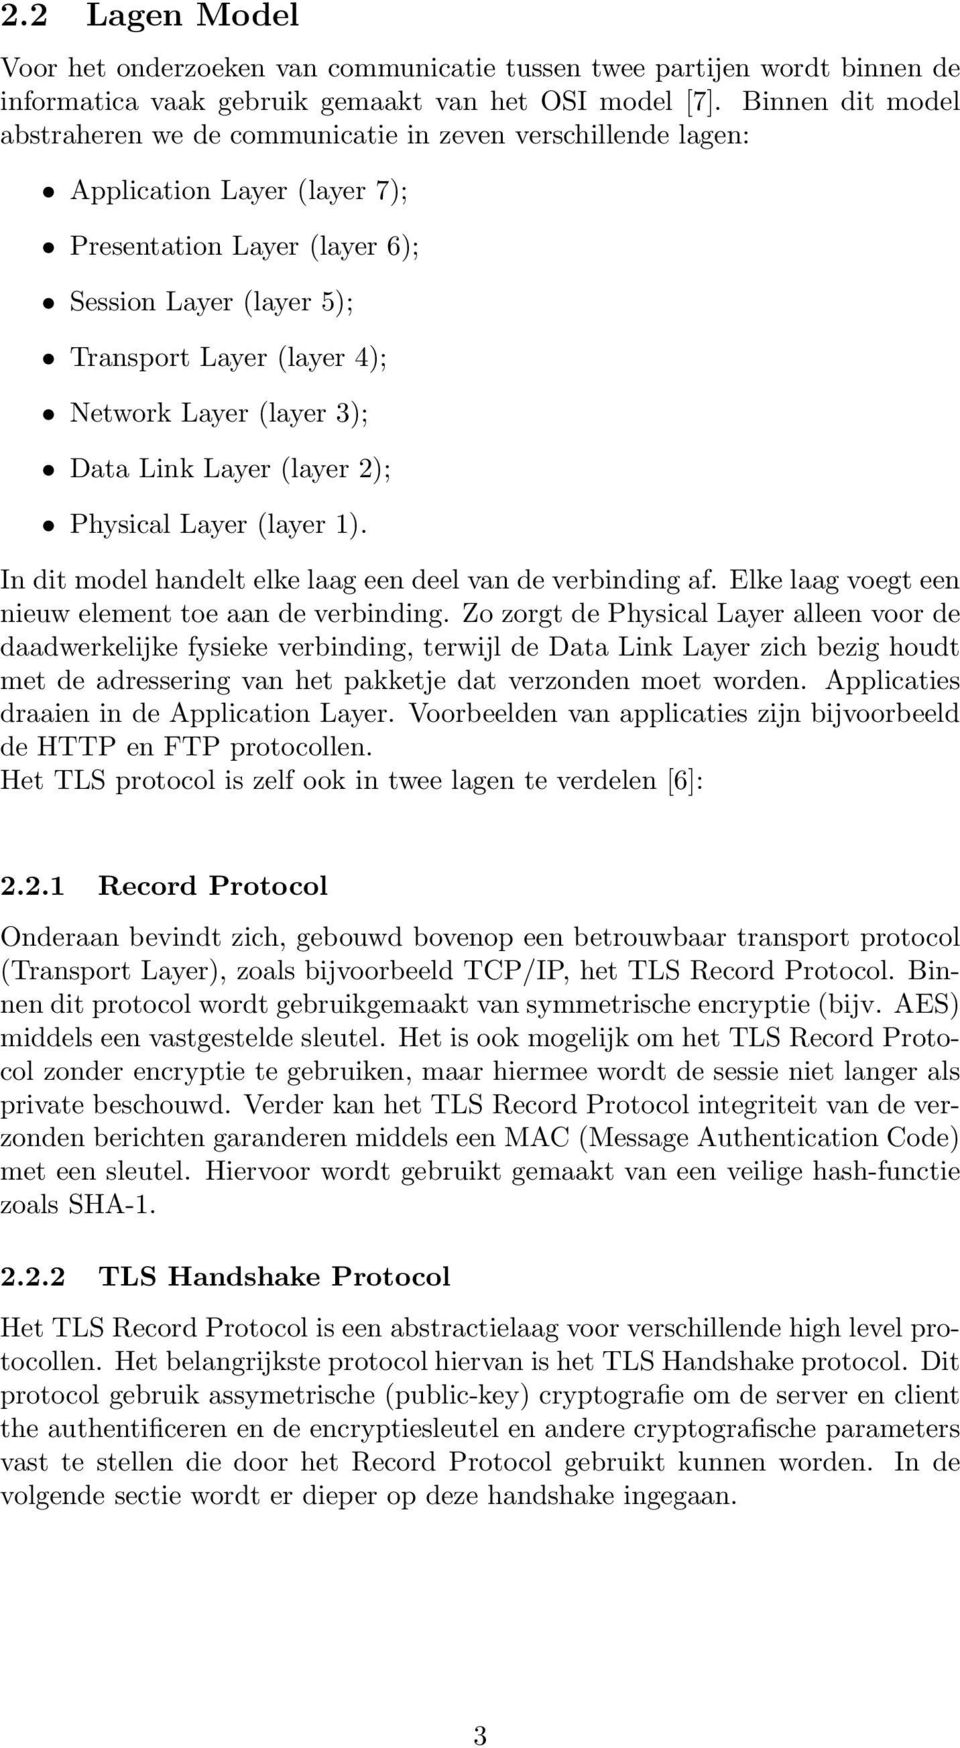 Layer (layer 3); Data Link Layer (layer 2); Physical Layer (layer 1). In dit model handelt elke laag een deel van de verbinding af. Elke laag voegt een nieuw element toe aan de verbinding.